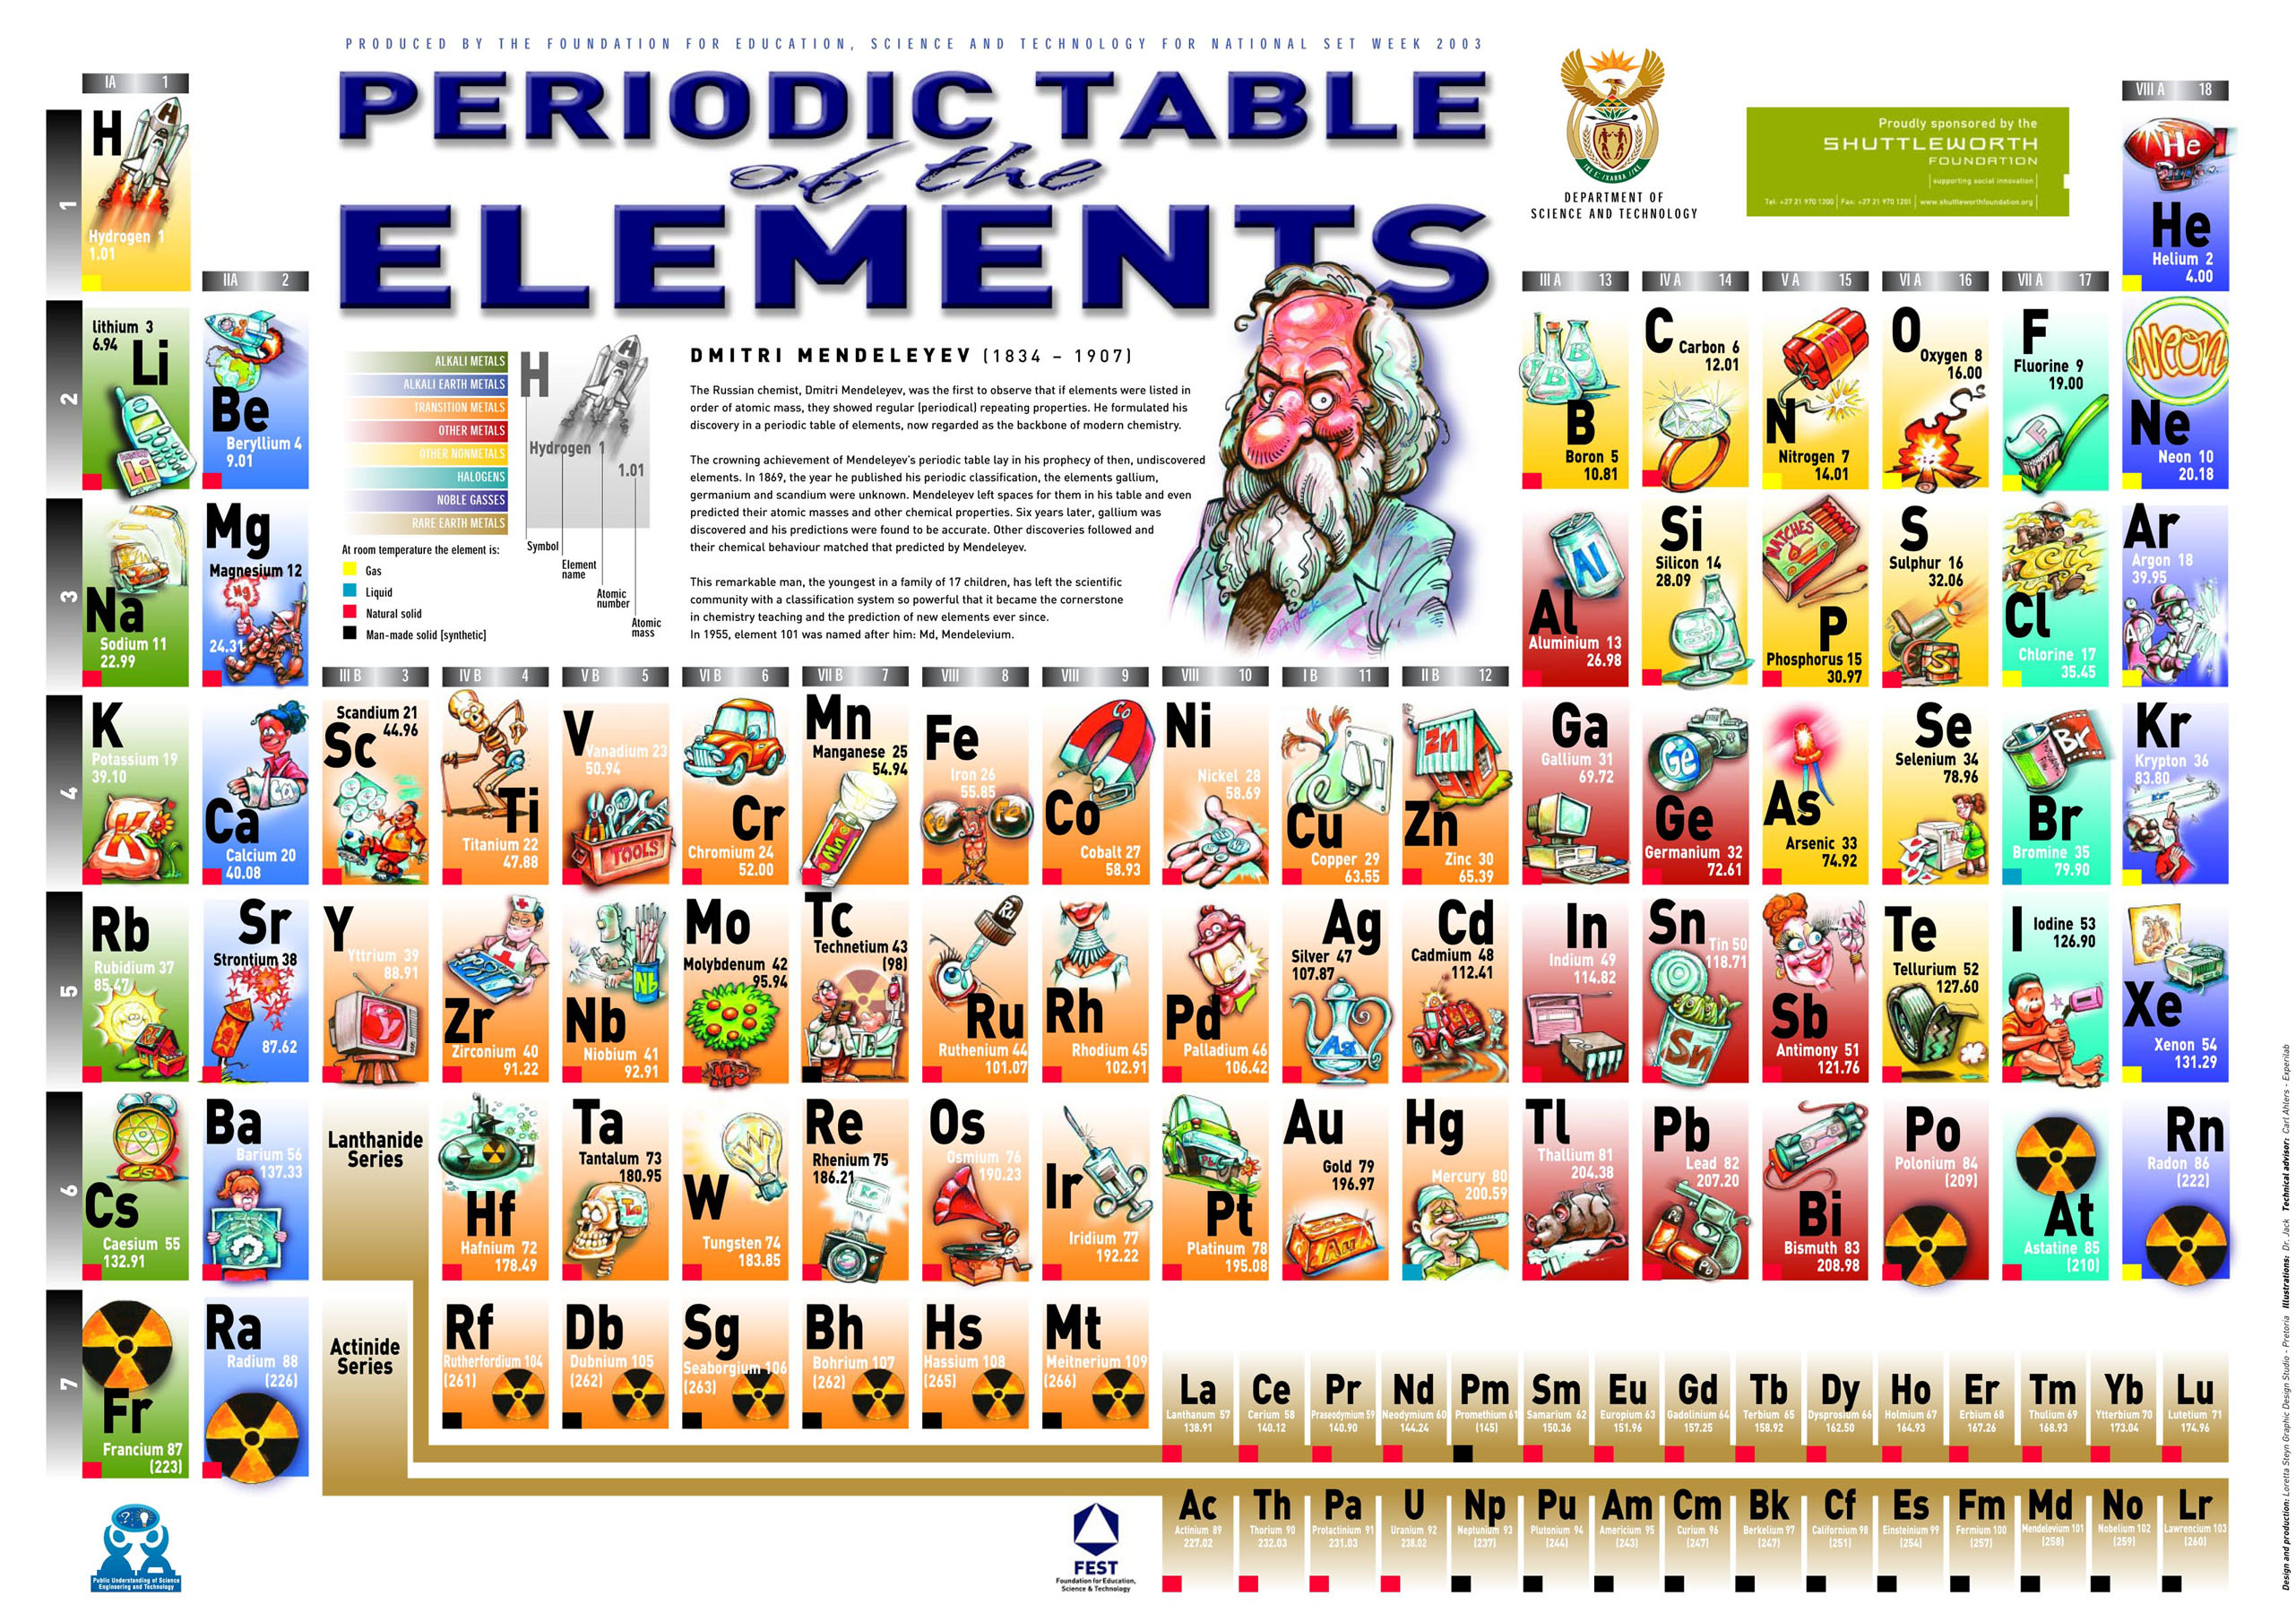 Periodic table of the elements in continental english language periodic table of the elements in continental english languagemichael canov from czech republic gamestrikefo Choice Image